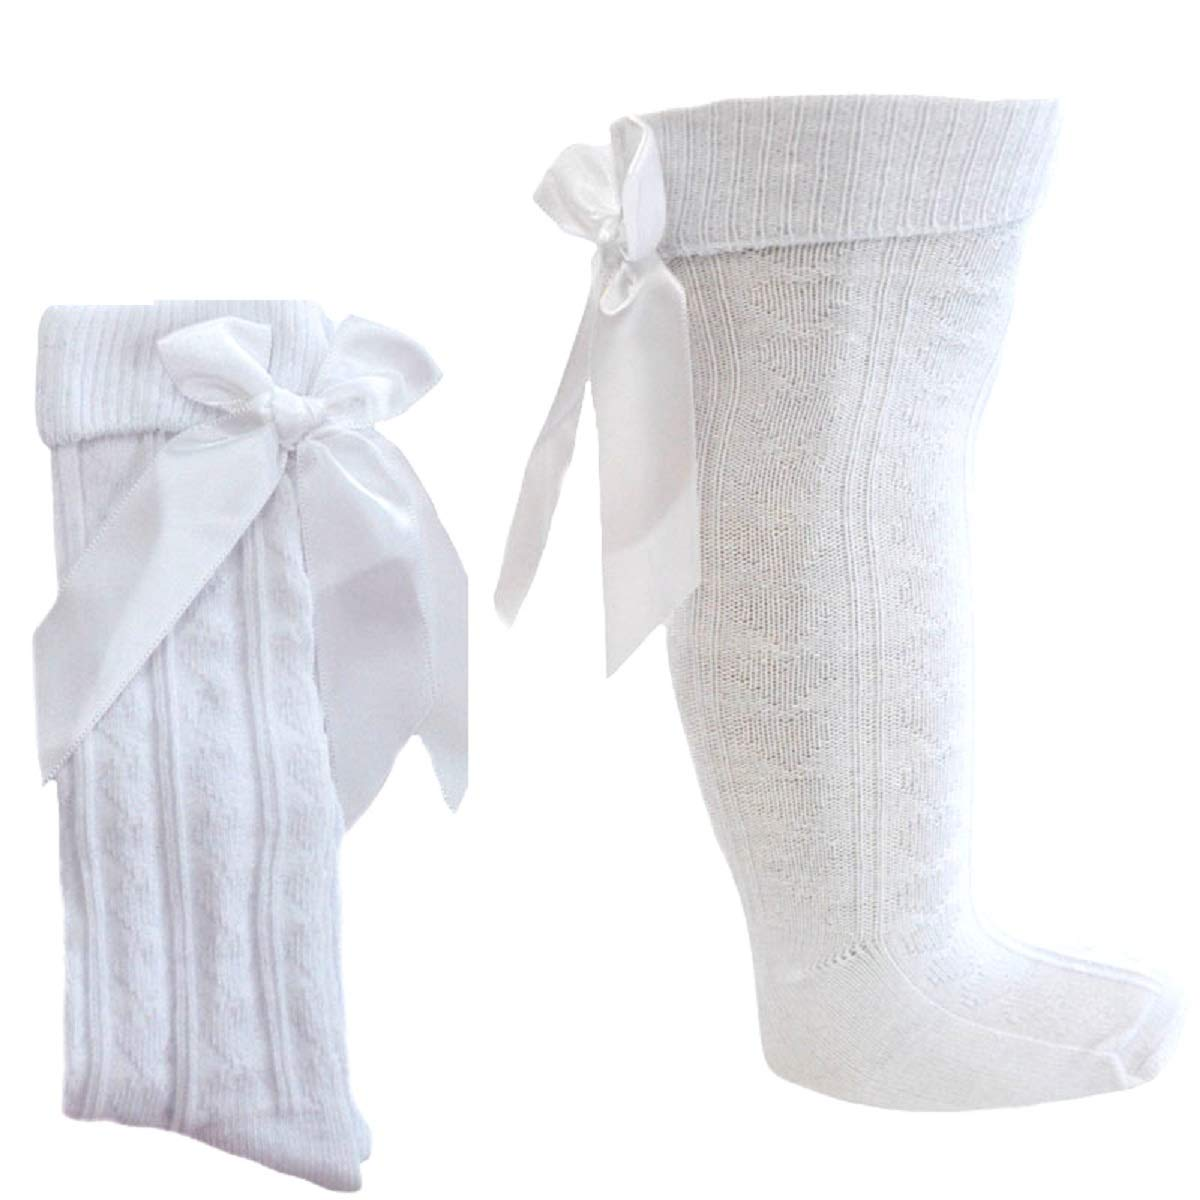 1 Pair Baby Girls Spanish Knee Length Socks with Heart Design Matching Stitched Large Bow